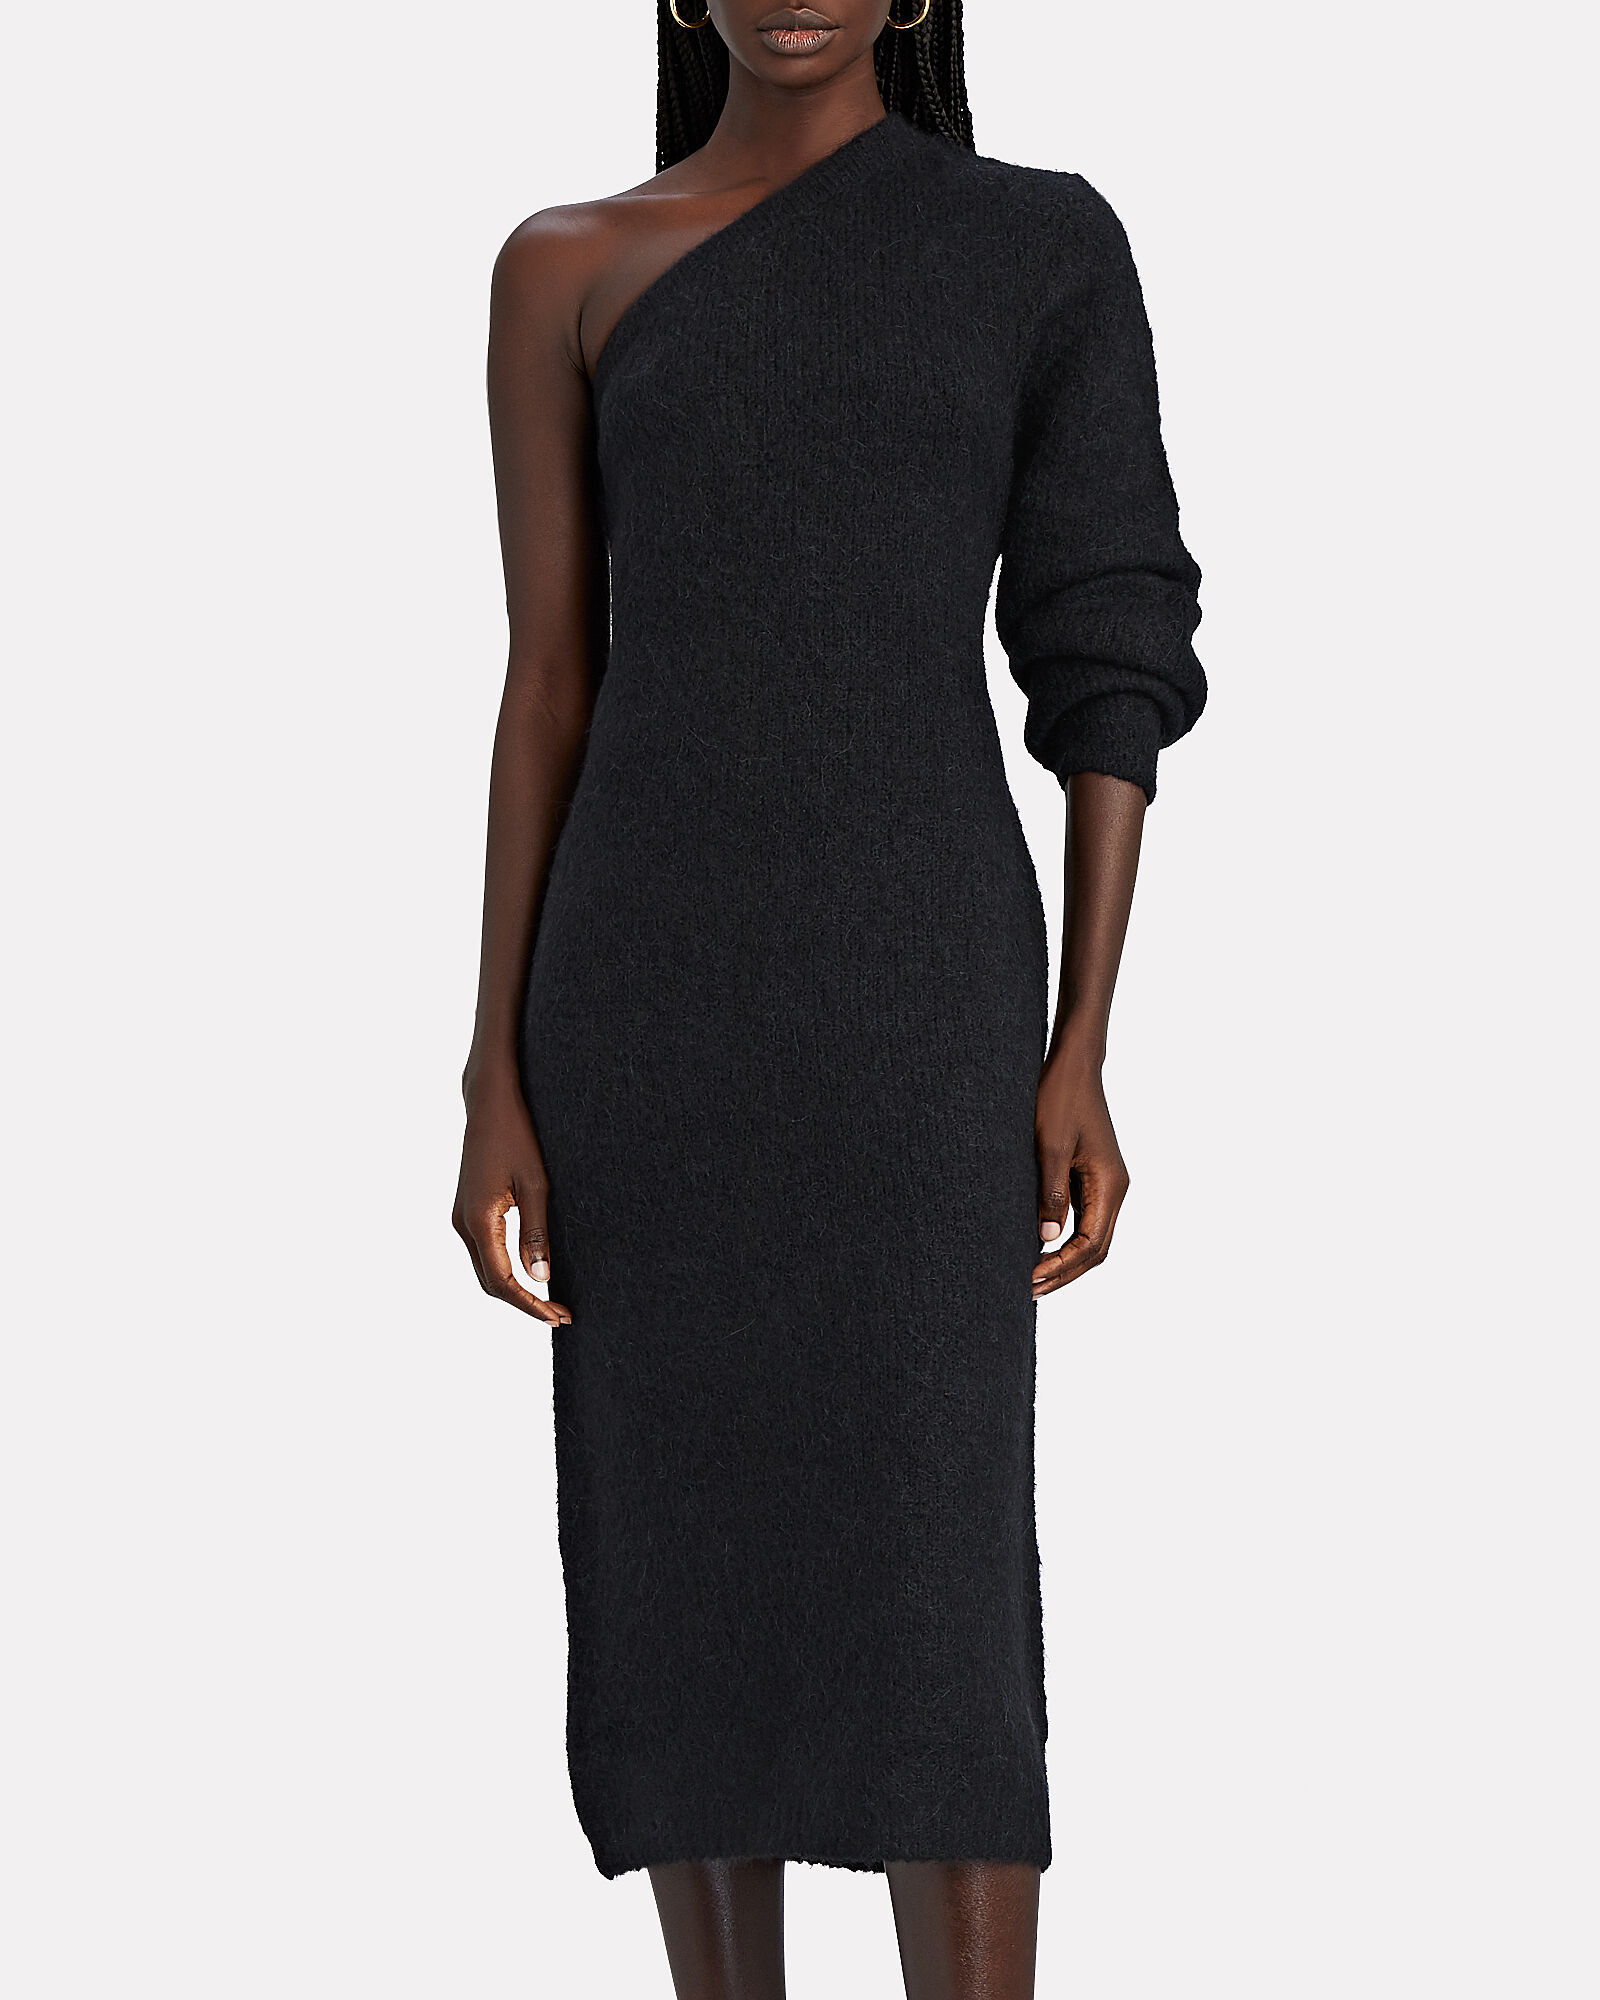 Motocyclette One-Shoulder Midi Dress, , hi-res